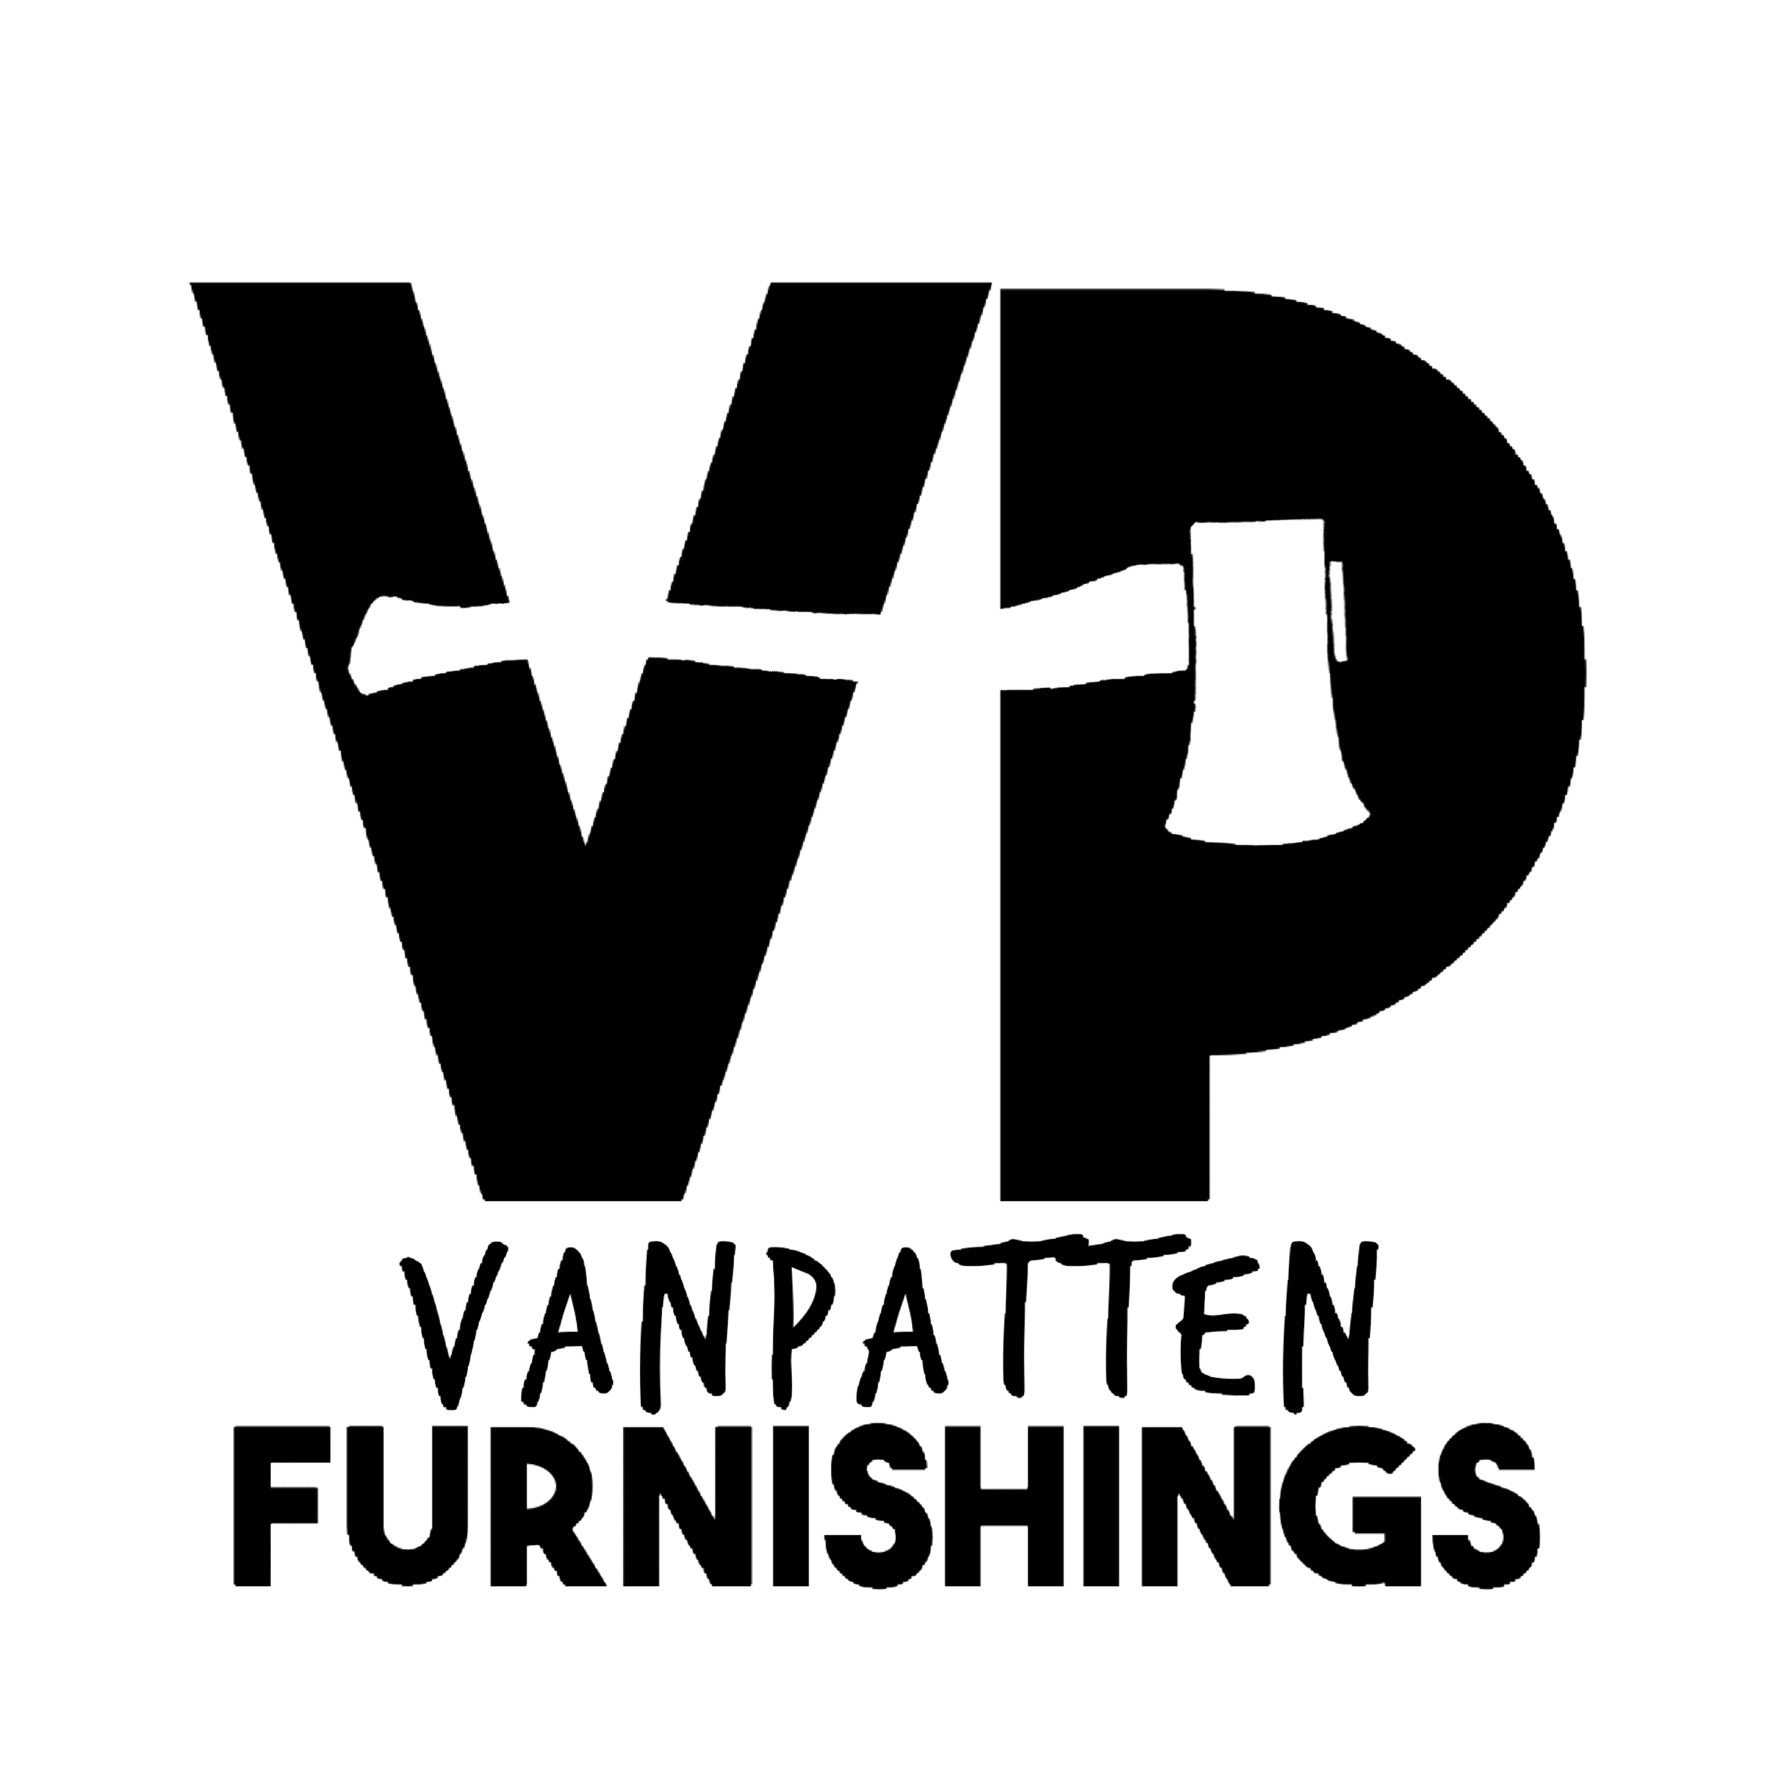 VanPatten Furnishings LLC logo